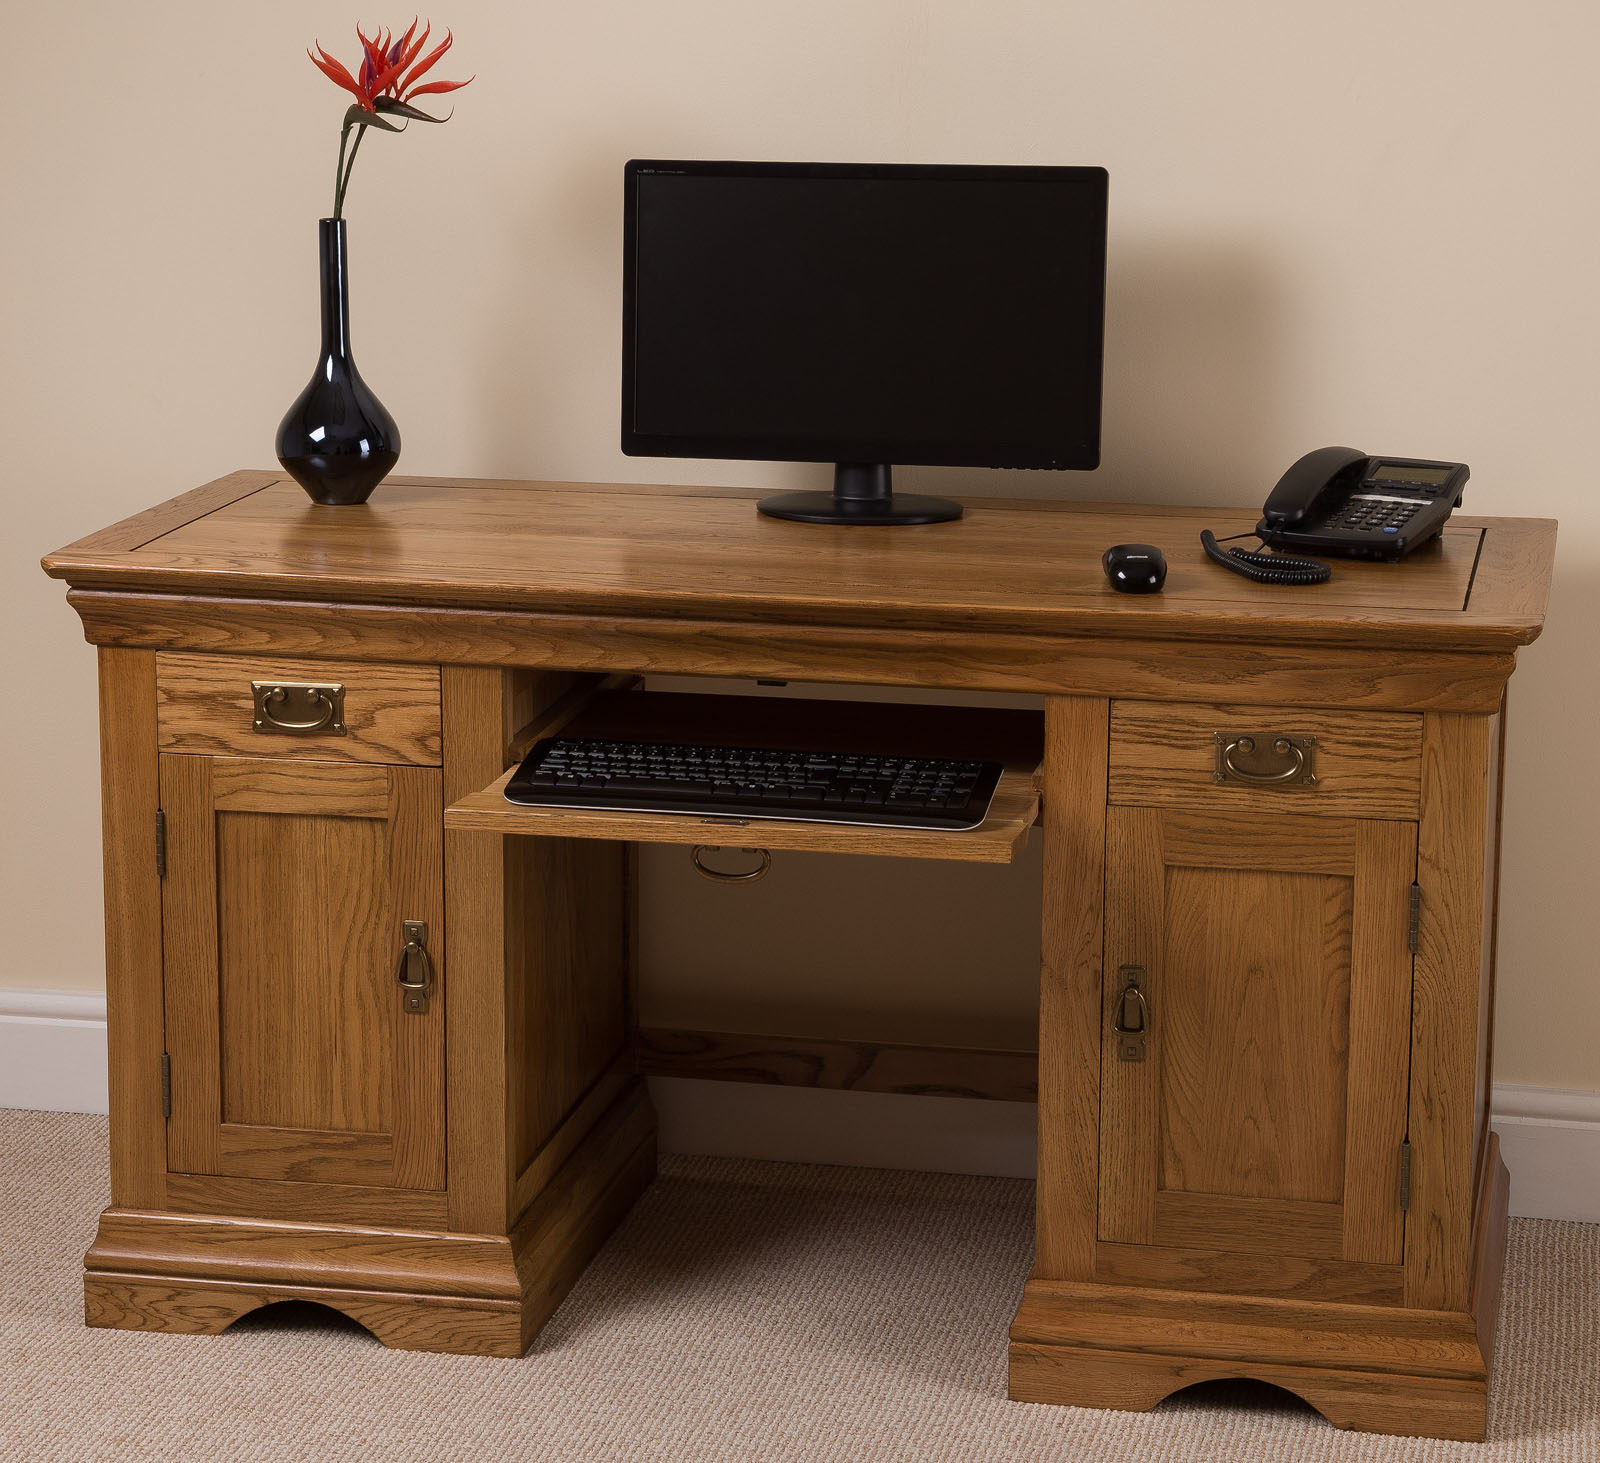 SOLID OAK LARGE COMPUTER DESK OFFICE STUDIO UNIT FURNITURE | eBay